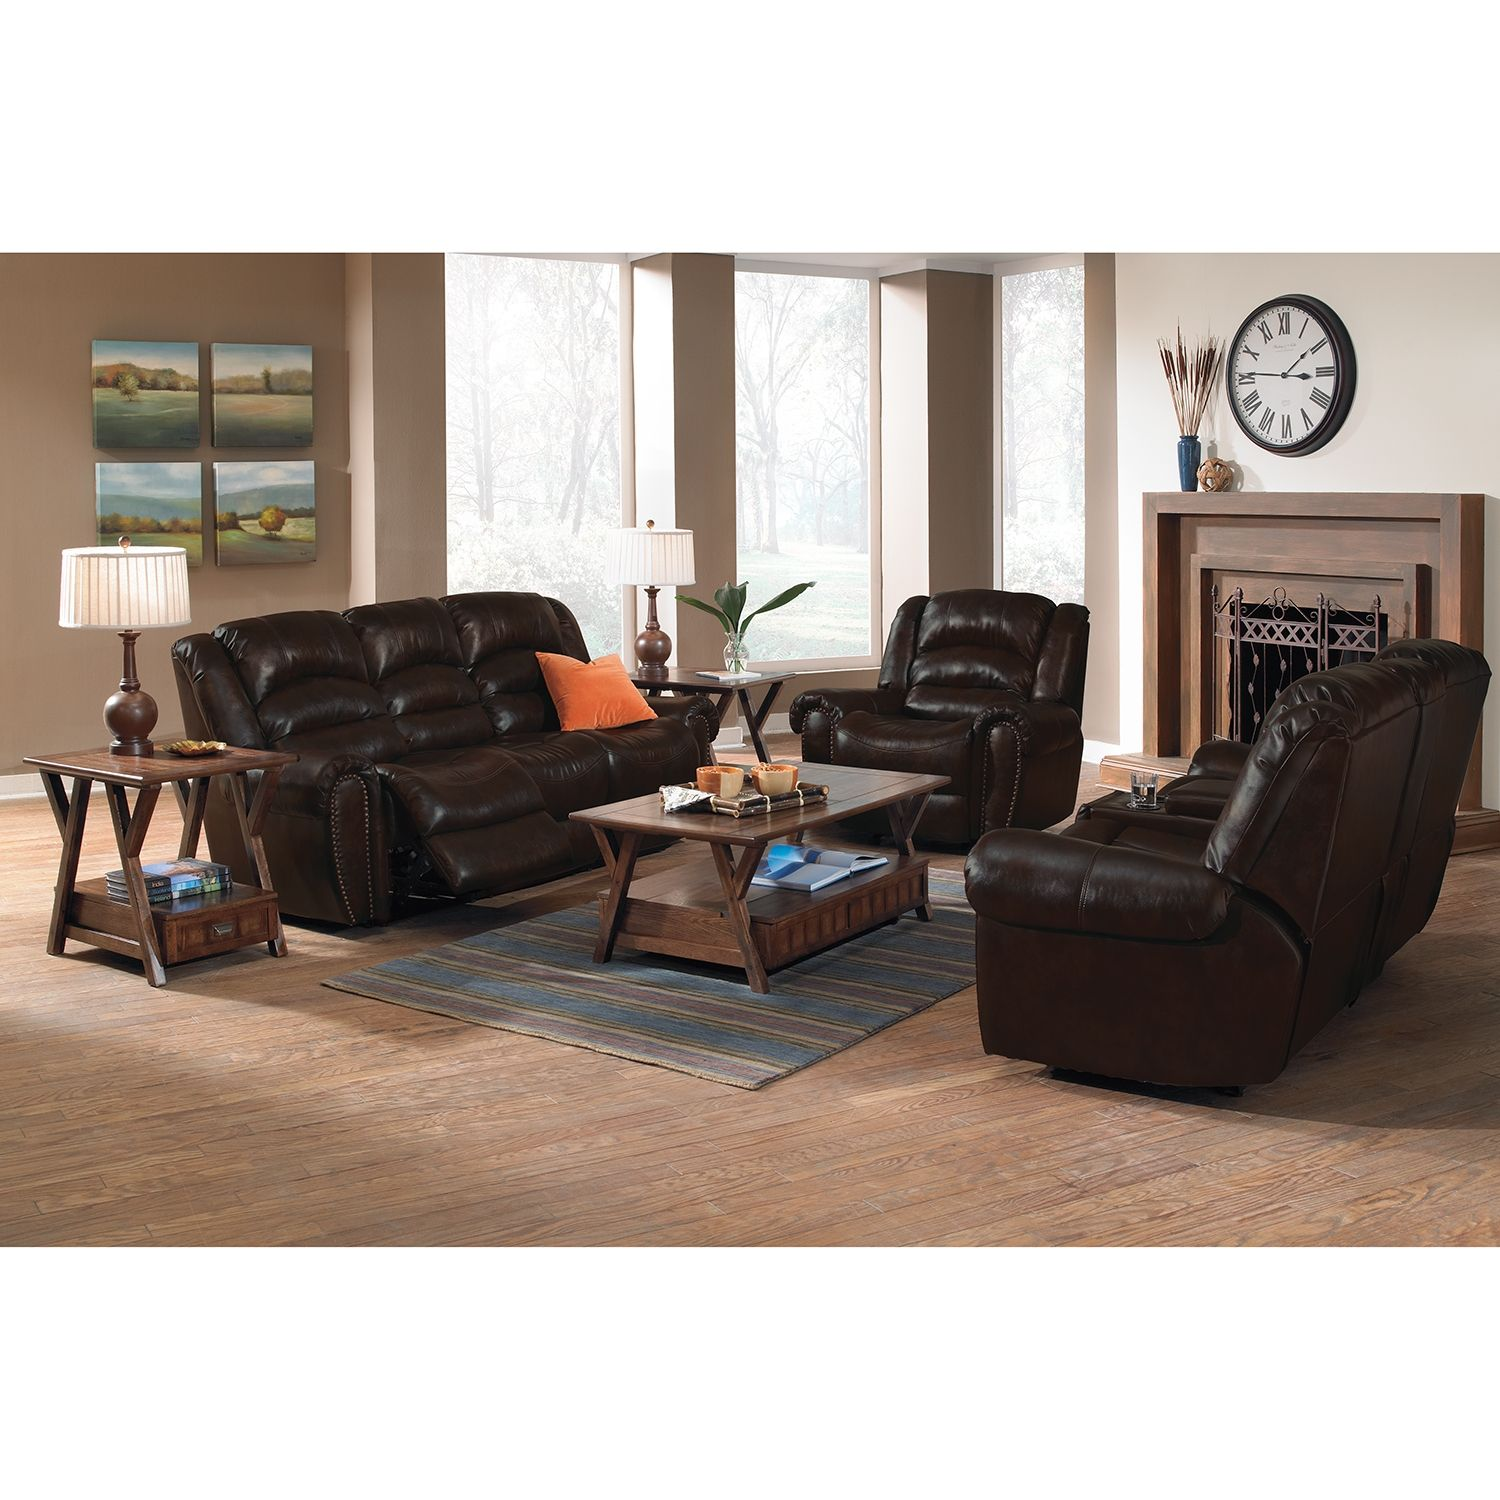 Galveston 3 Pc. Reclining Living Room | American Signature Furniture